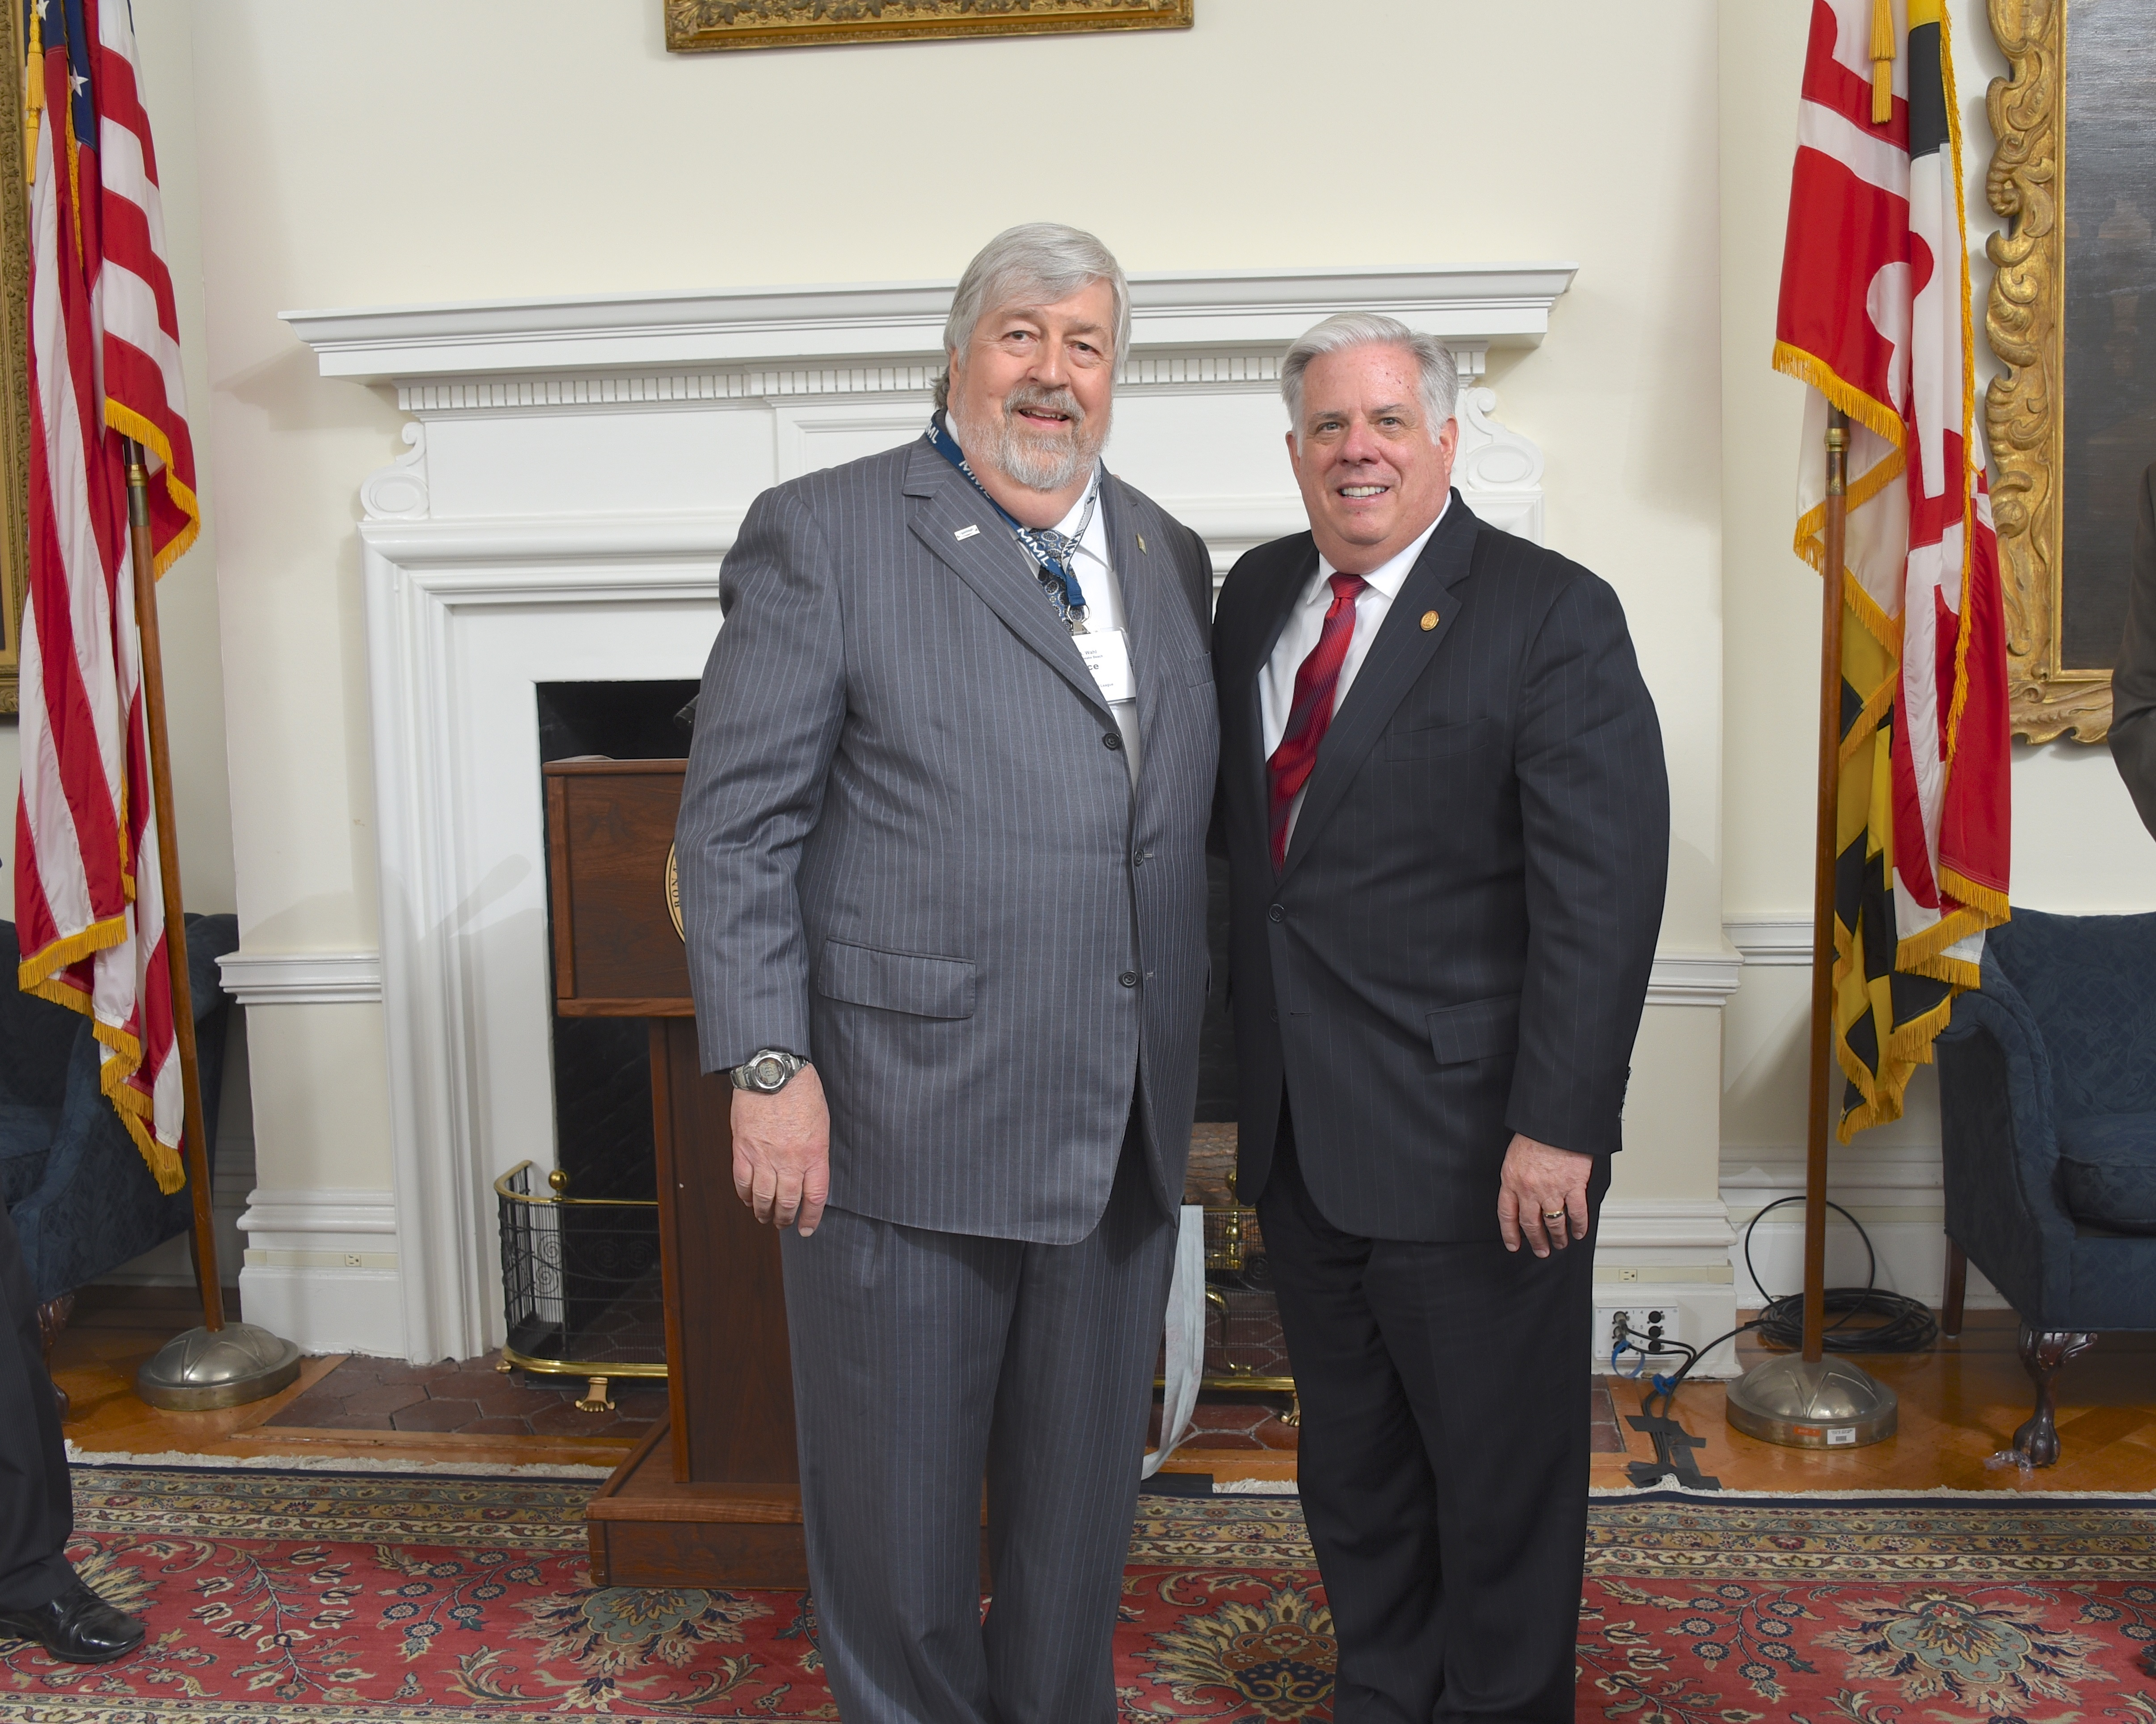 President Wahl and Governor Hogan